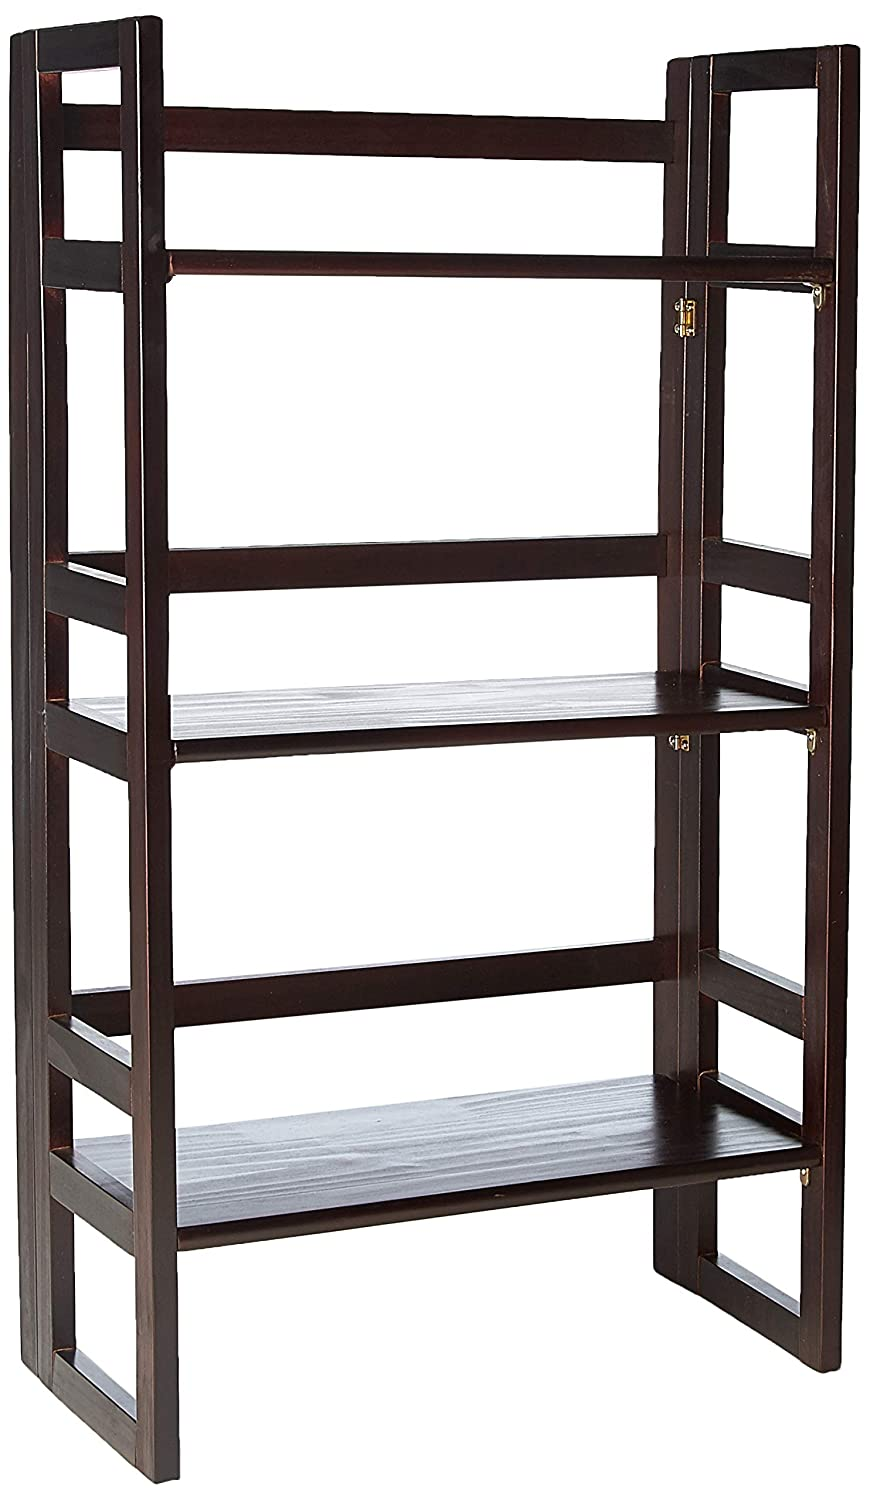 Casual Home 3 Shelf Folding Student Bookcase 20 75 Wide Espresso